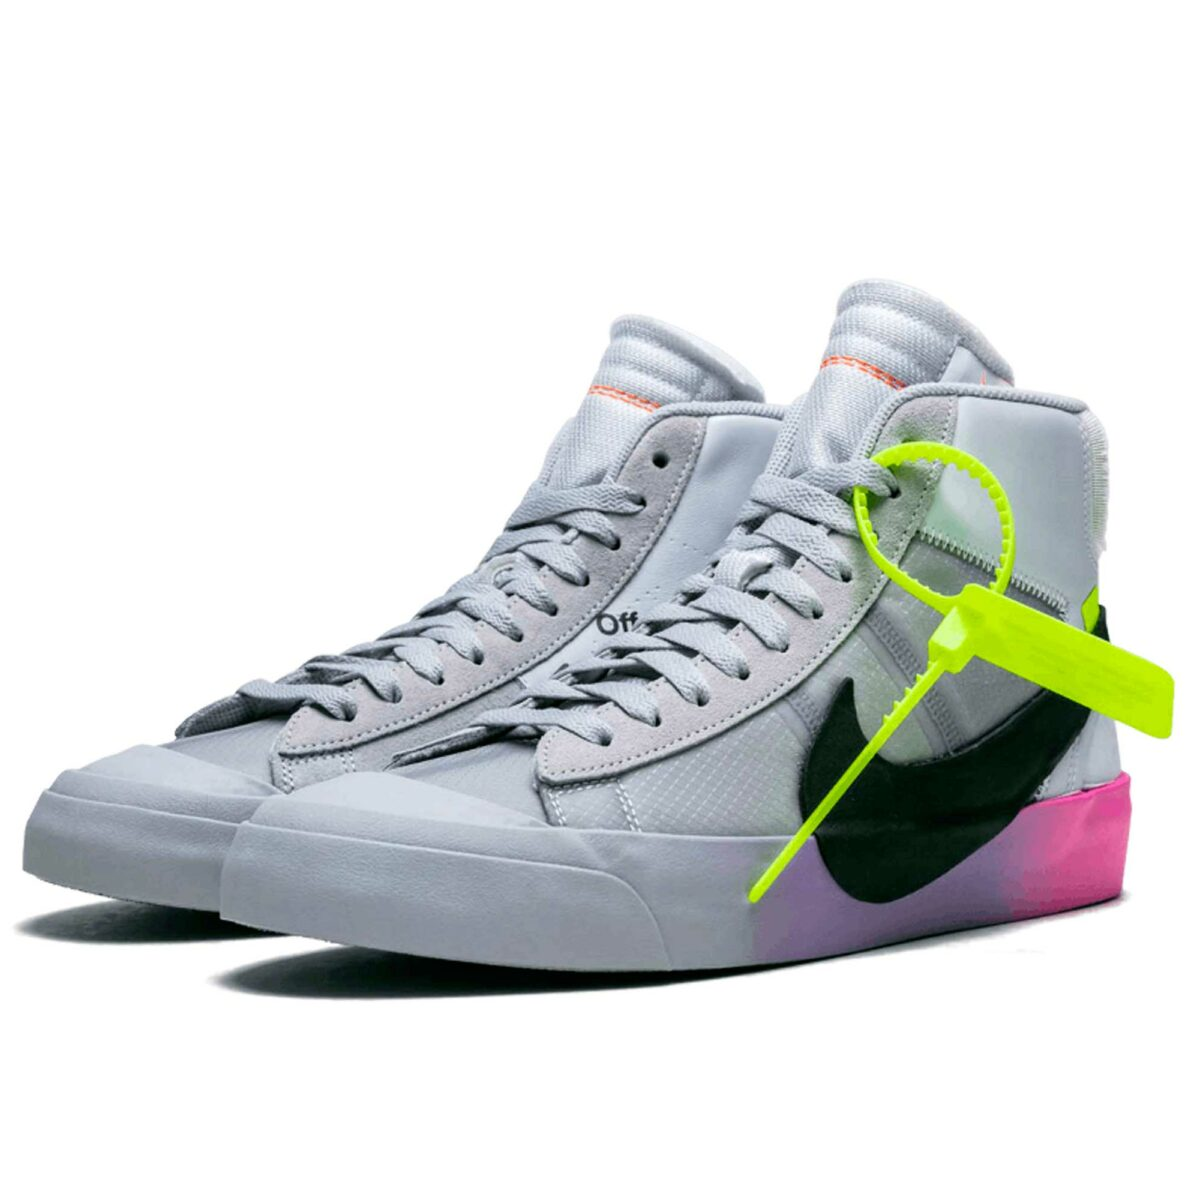 nike blazer mid The Serena Williams x Off White x Nike Blazer Queen AA3832_002 купить